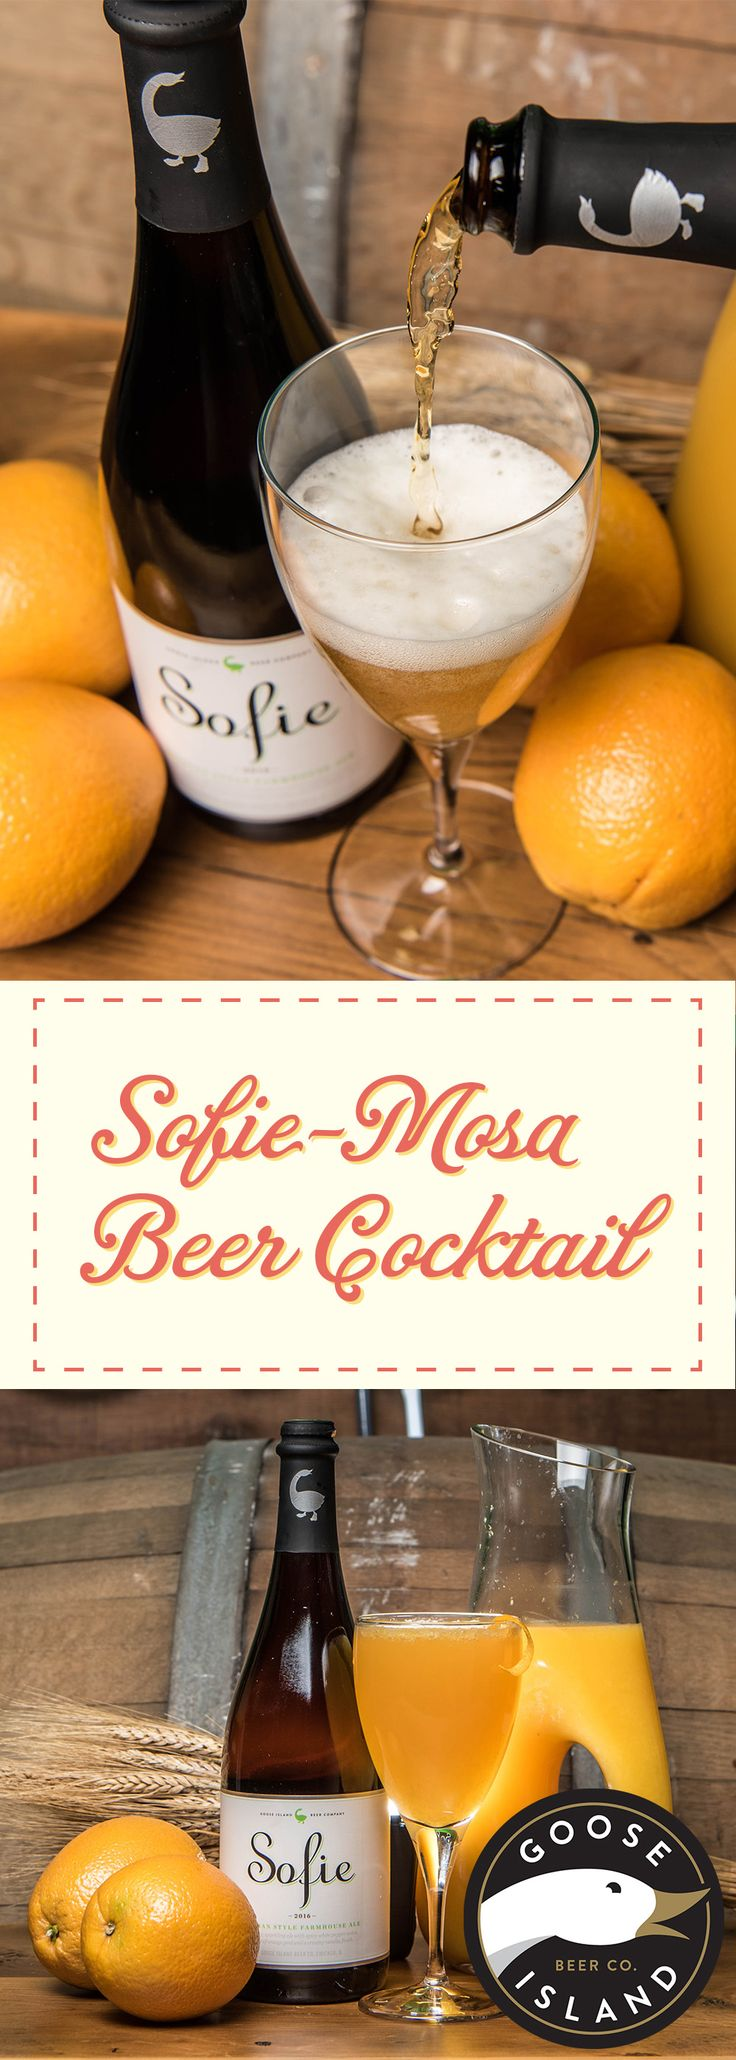 Need a quick way to take your brunch to the next level? It's time for the Sofie-mosa. This simple beer cocktail is delicious and perfect for brunch. You take 1 part Sofie - the Belgian Style Farmhouse Ale from Goose Island - and add 1 part orange juice. Add a little garnish if you're feeling fancy and BOOM - you've got yourself a simple yet elegant craft beer cocktail that pairs wonderfully with all your favorite brunch dishes. Try it with Eggs Benedict!